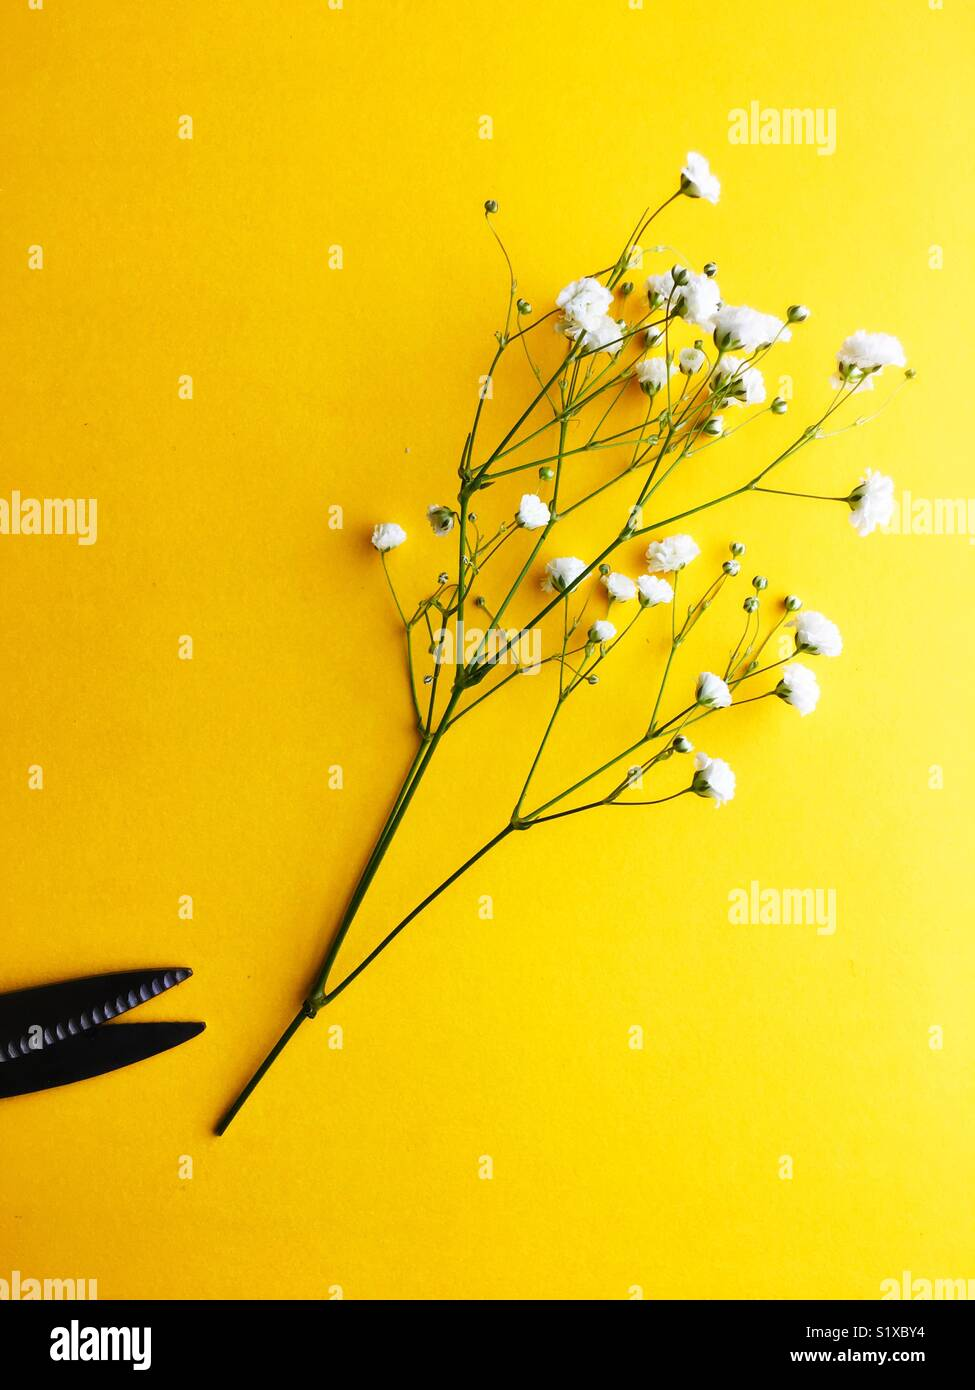 Still life of florist shears and babies breath. - Stock Image